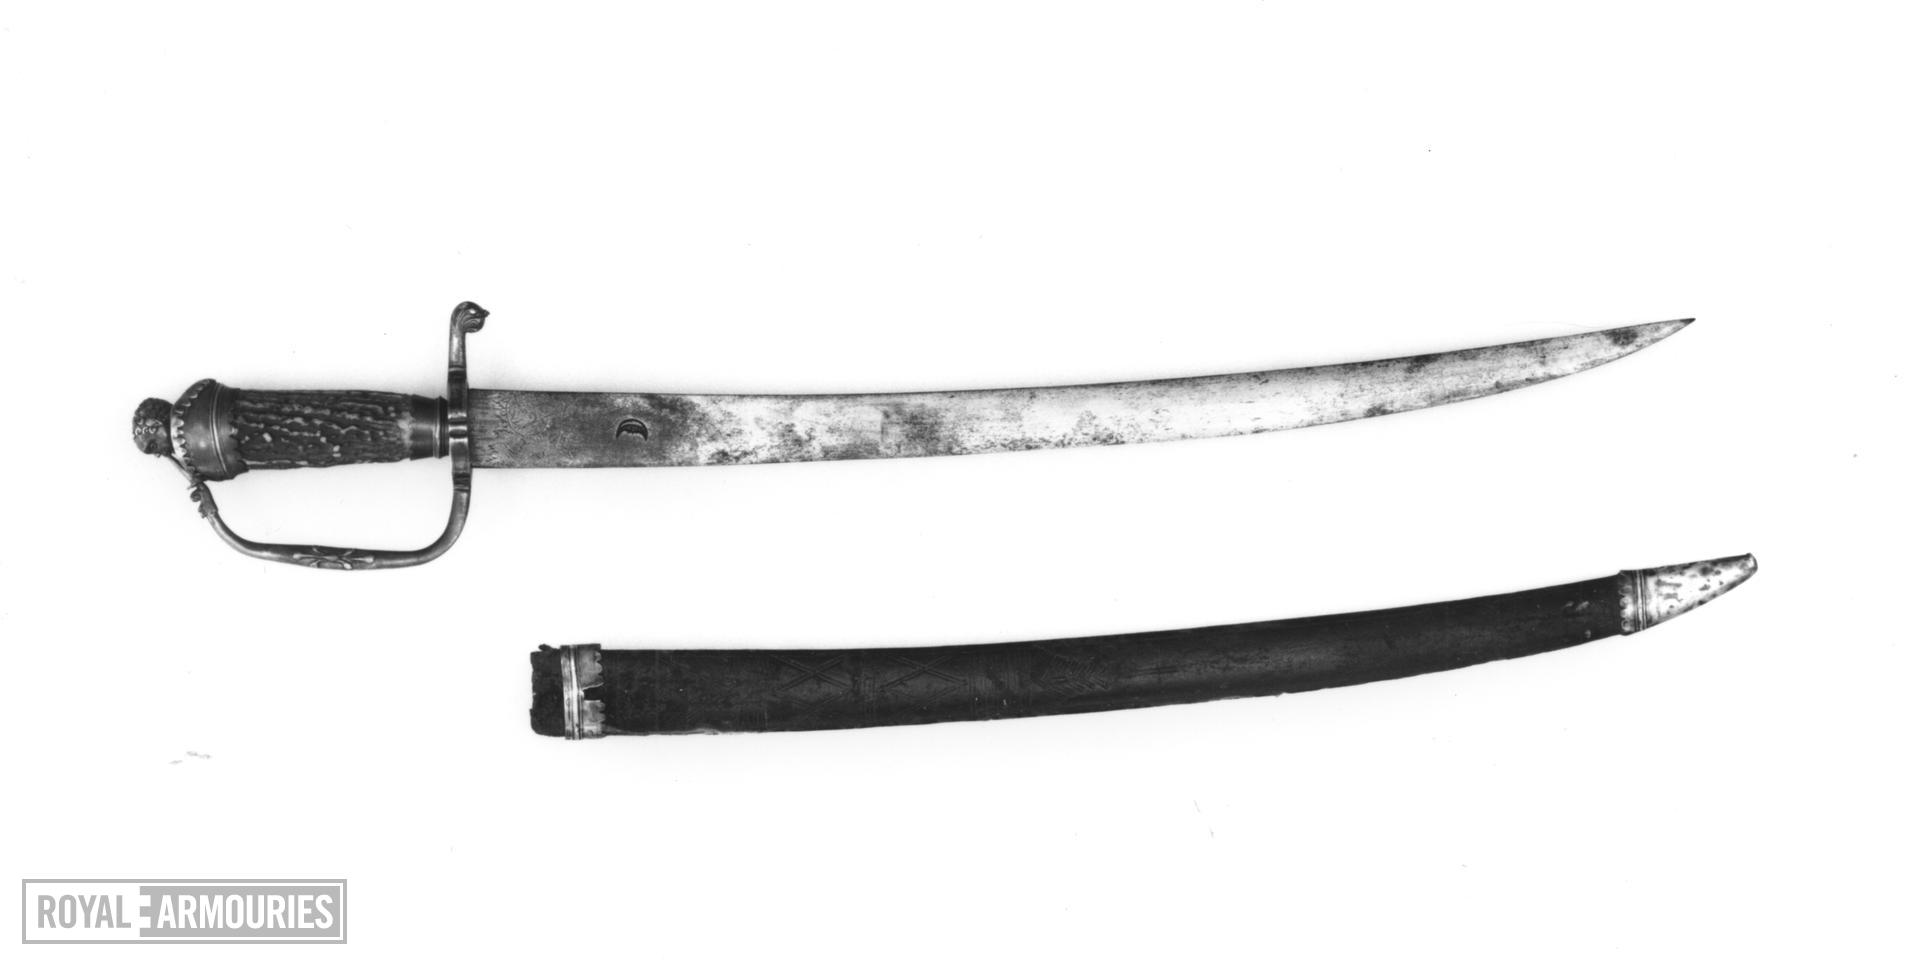 Hanger and scabbard